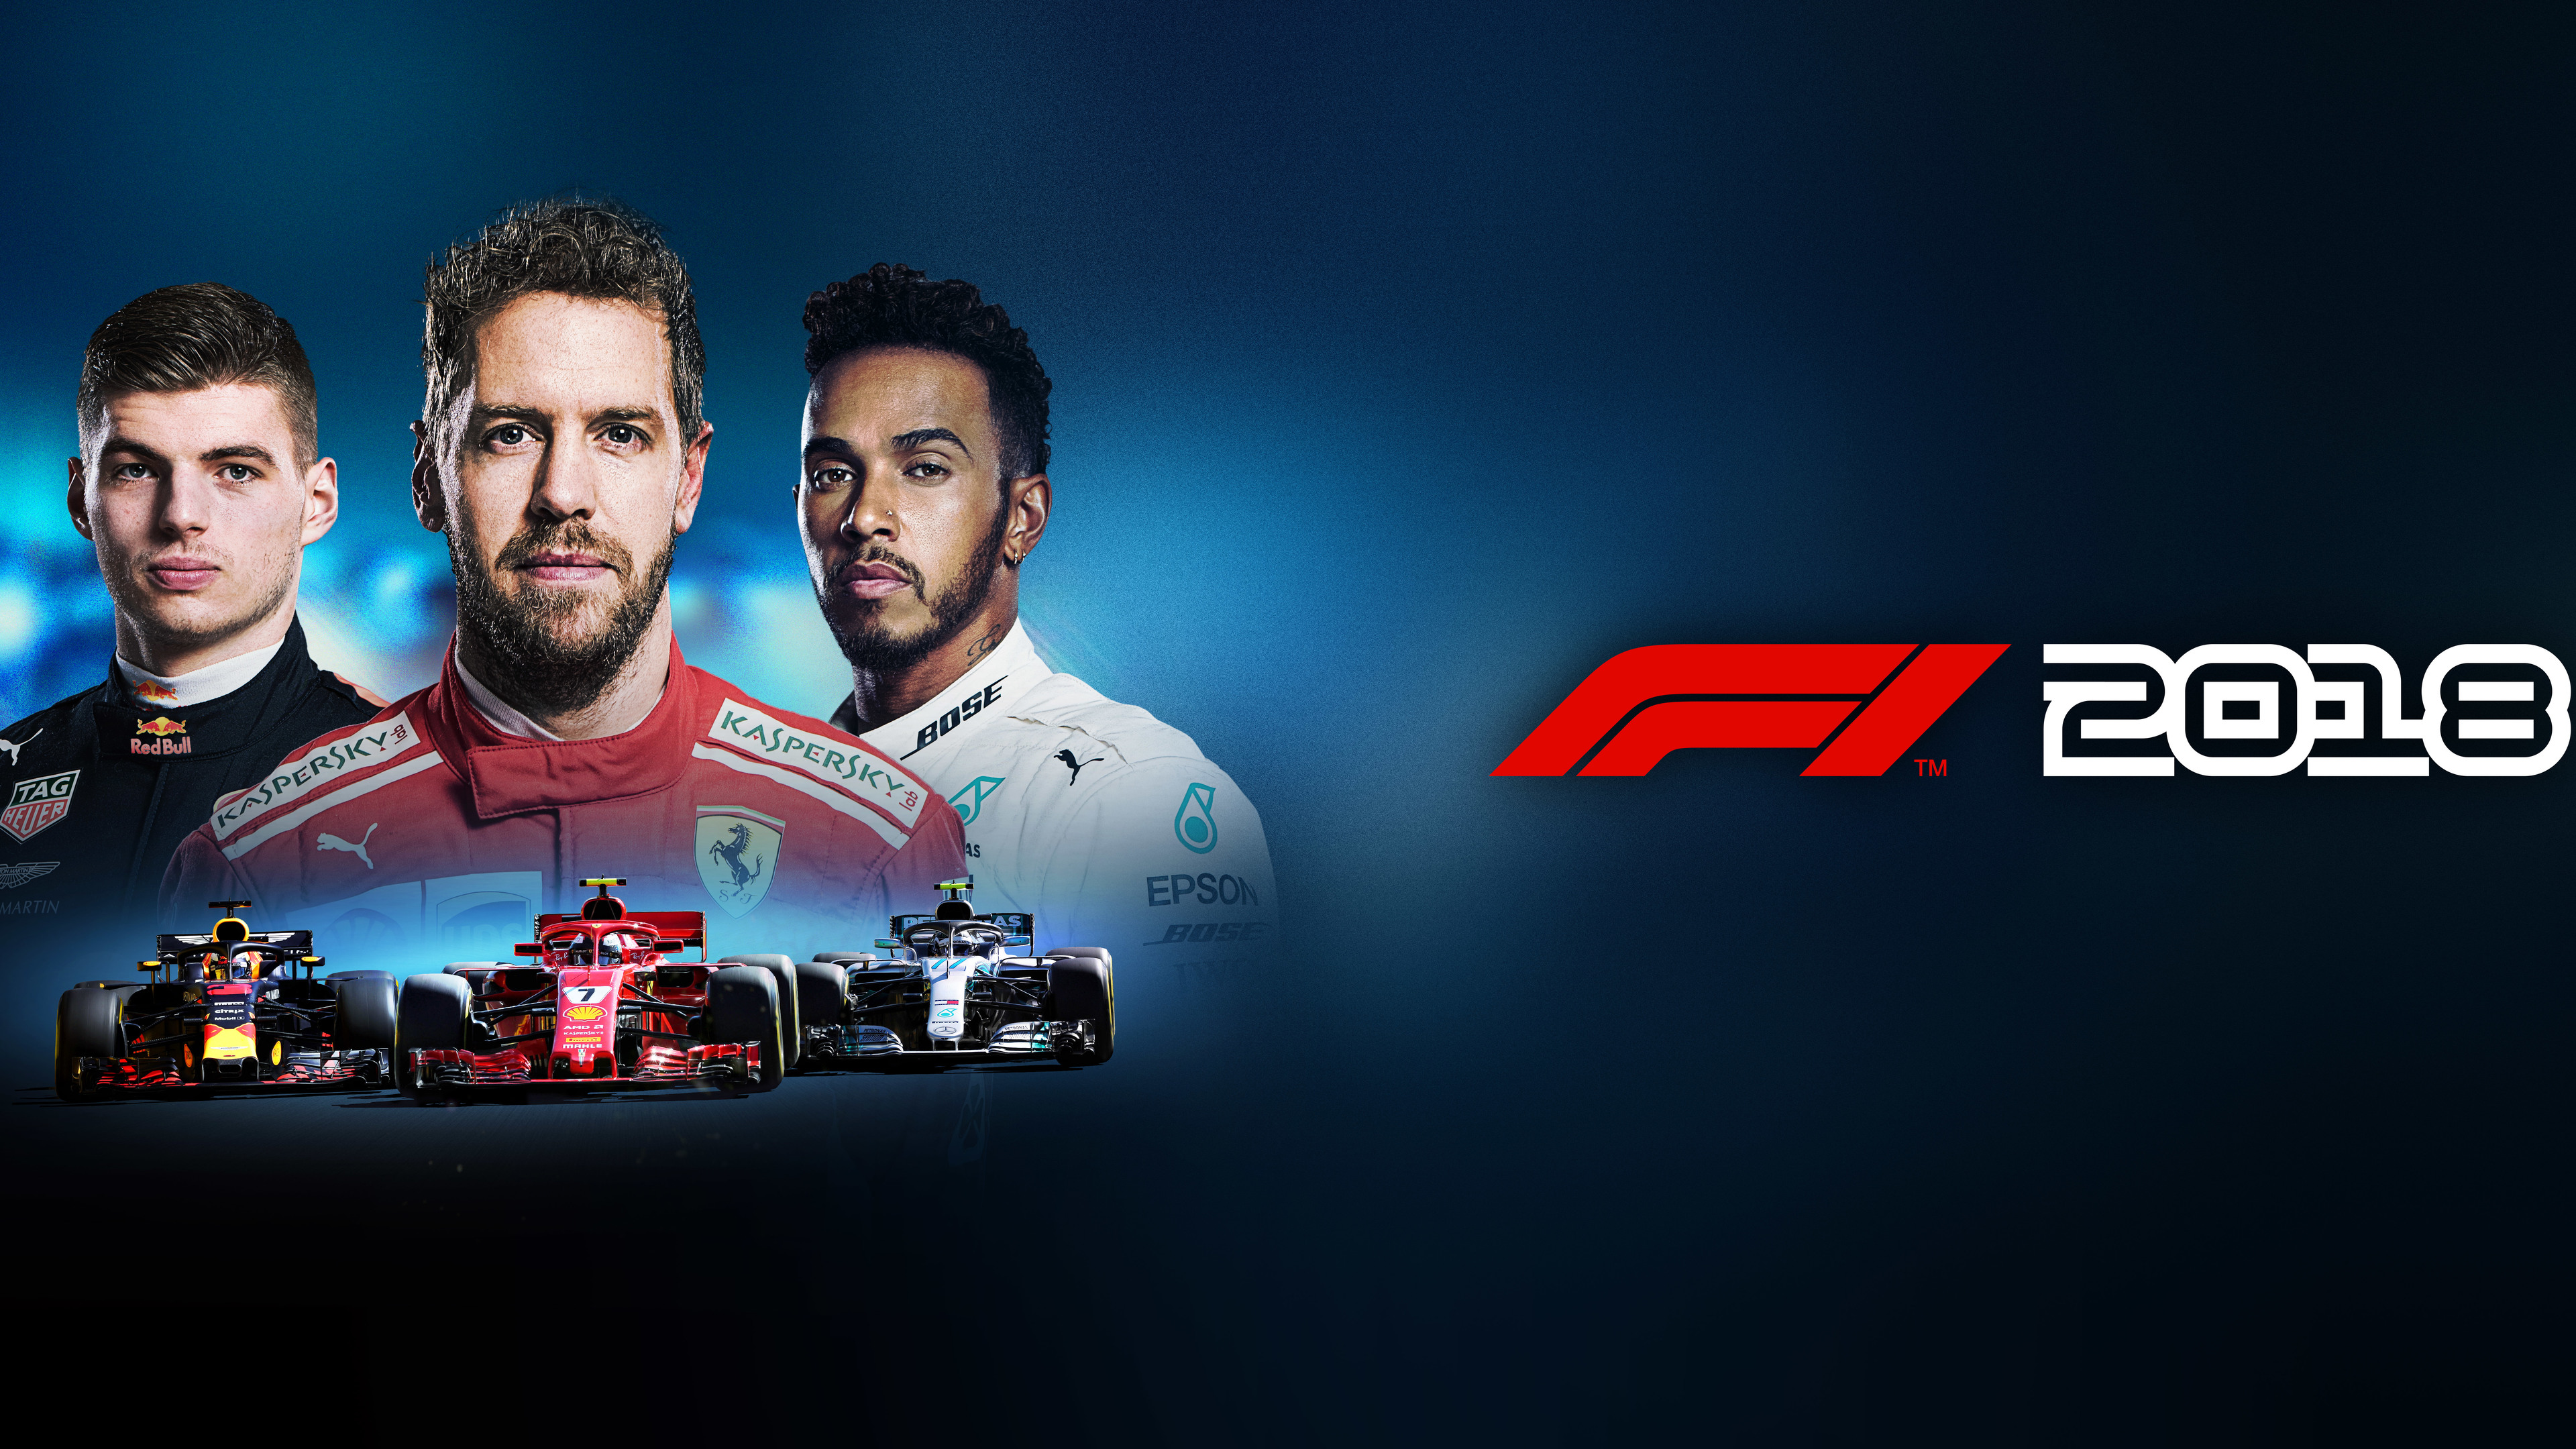 f1 2018 game 10k 1537691632 - F1 2018 Game 10k - hd-wallpapers, games wallpapers, f1 wallpapers, f1 2018 game wallpapers, 8k wallpapers, 5k wallpapers, 4k-wallpapers, 2018 games wallpapers, 10k wallpapers